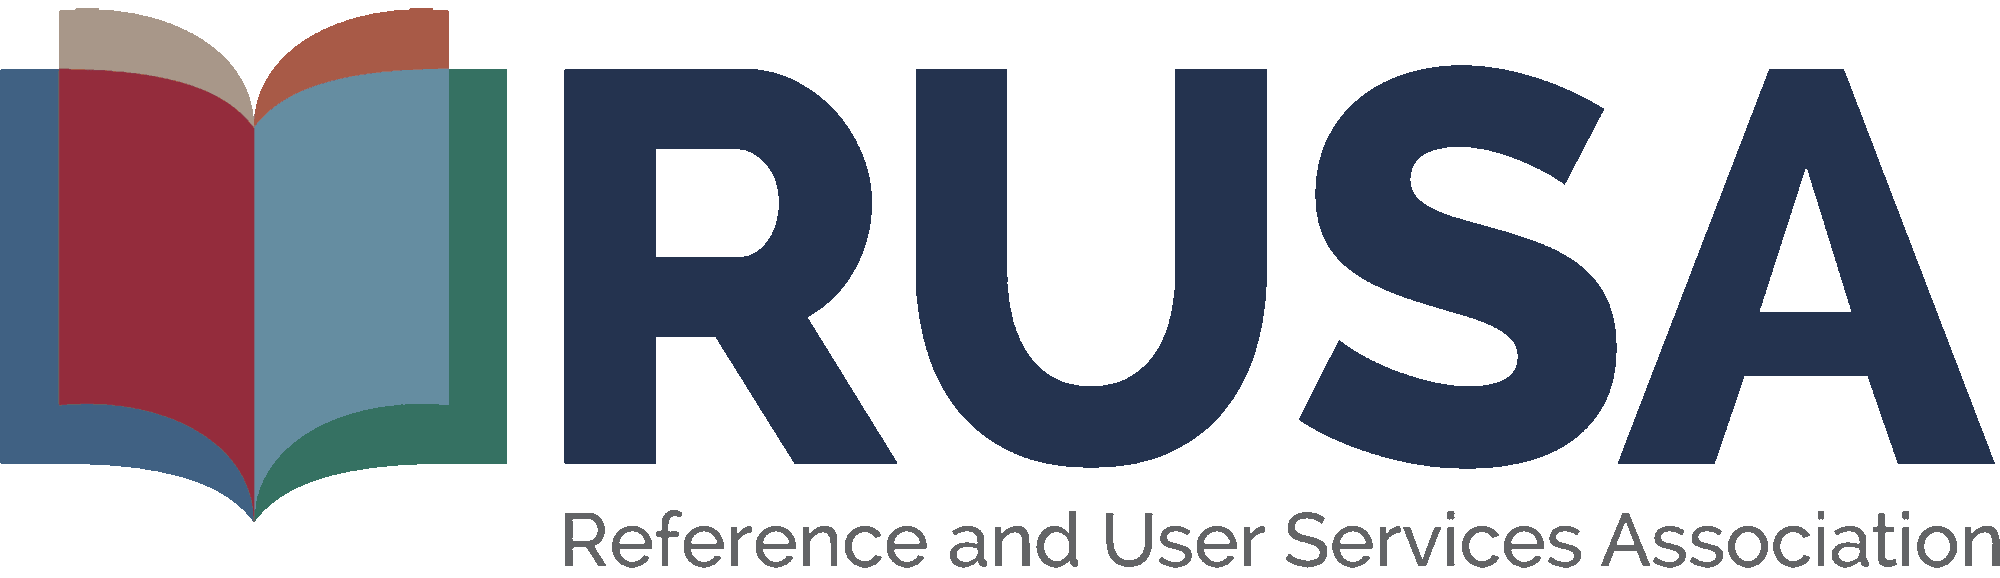 Reference & User Services Association